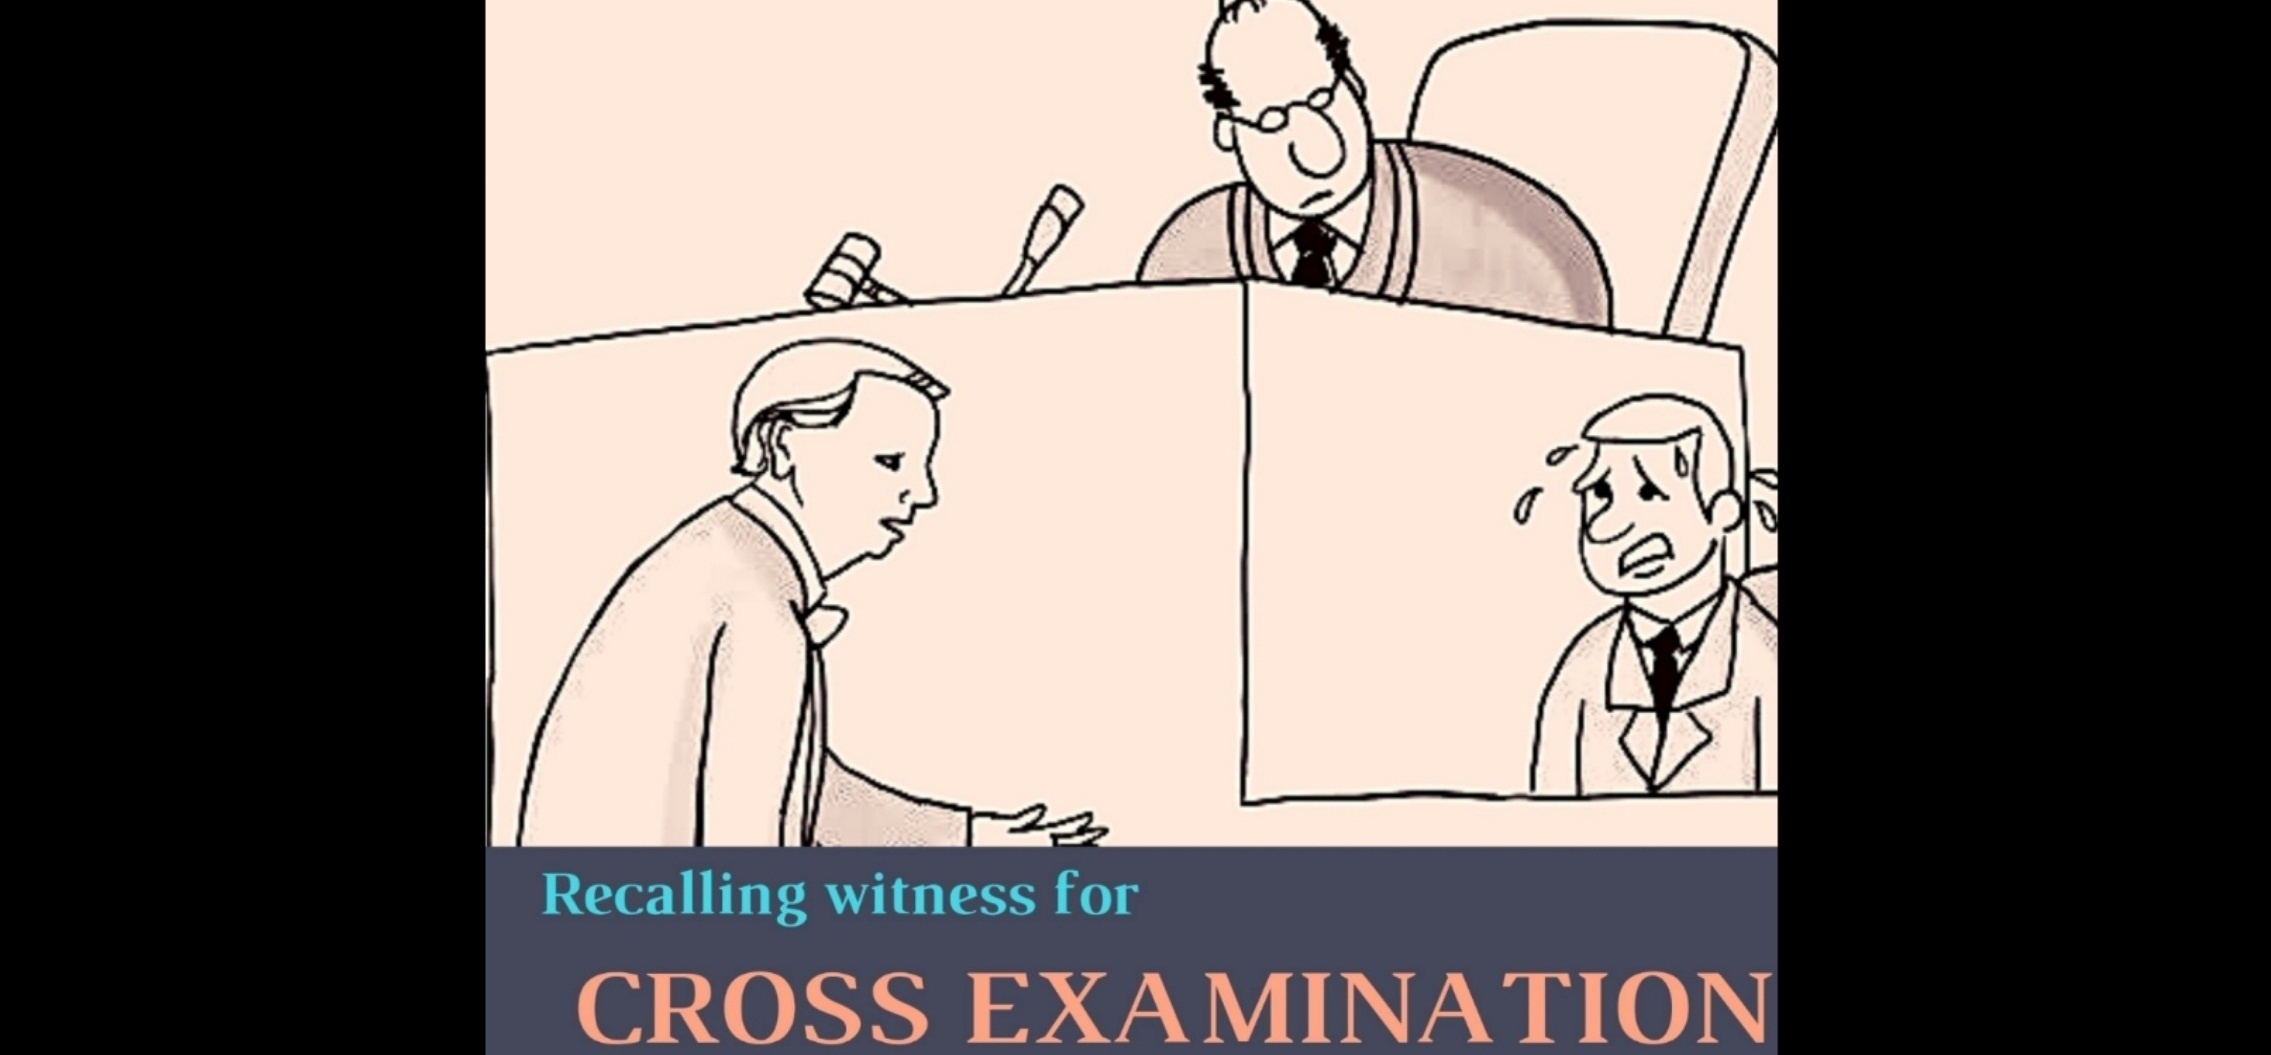 Recalling Witness for Cross-Examination